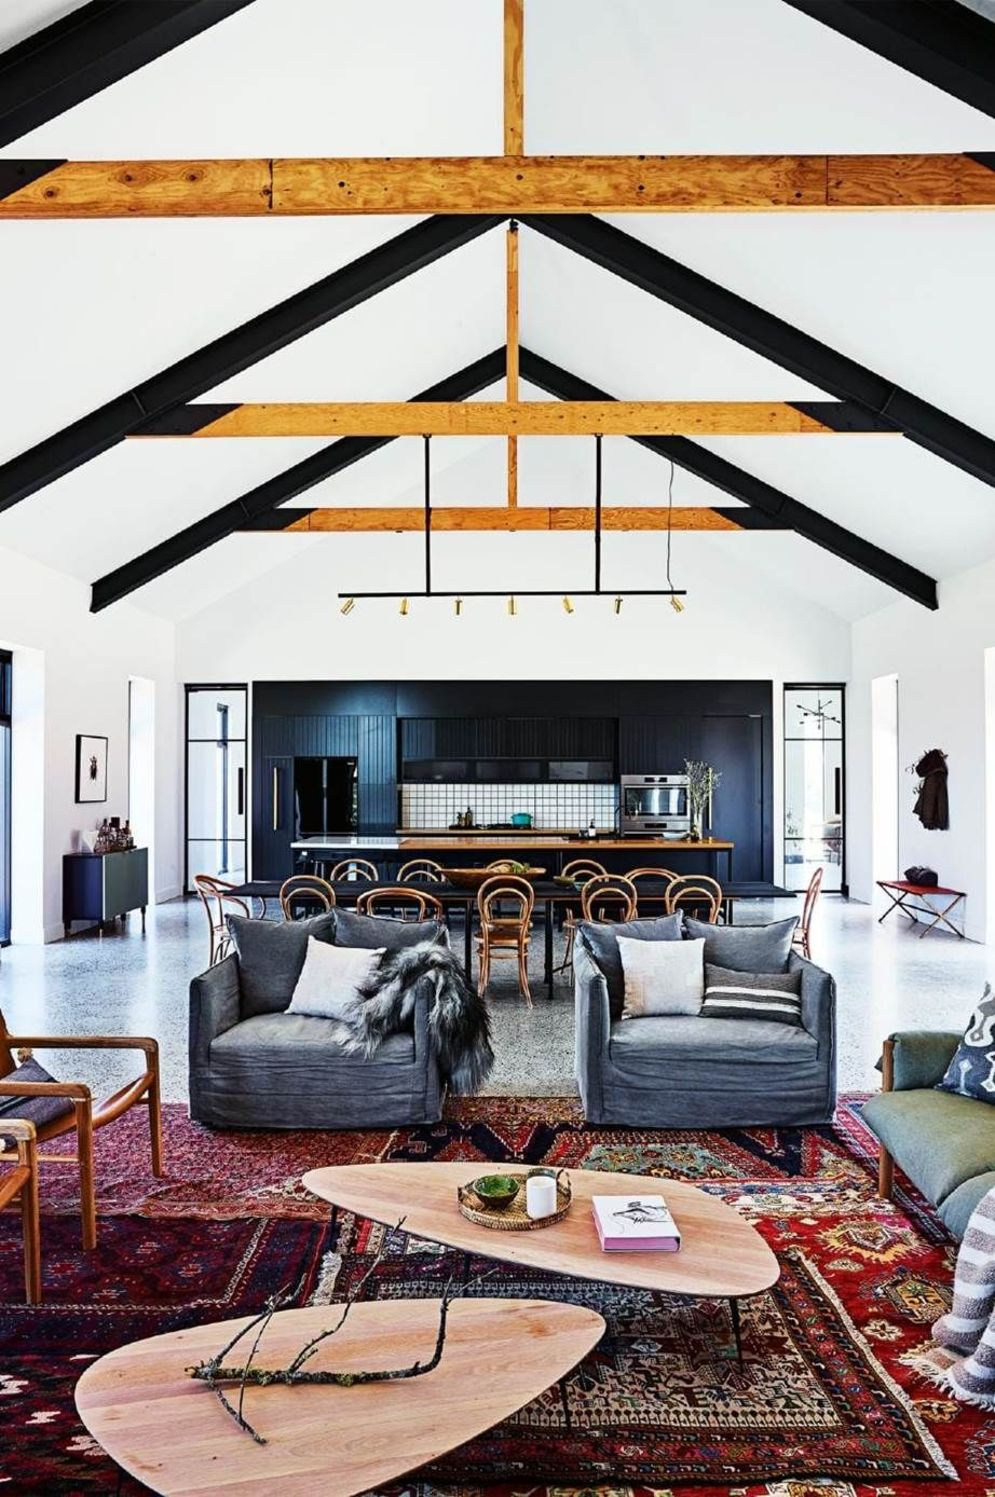 Spacious home images with vaulted ceiling showcasing grand and wonderful home design Image 37